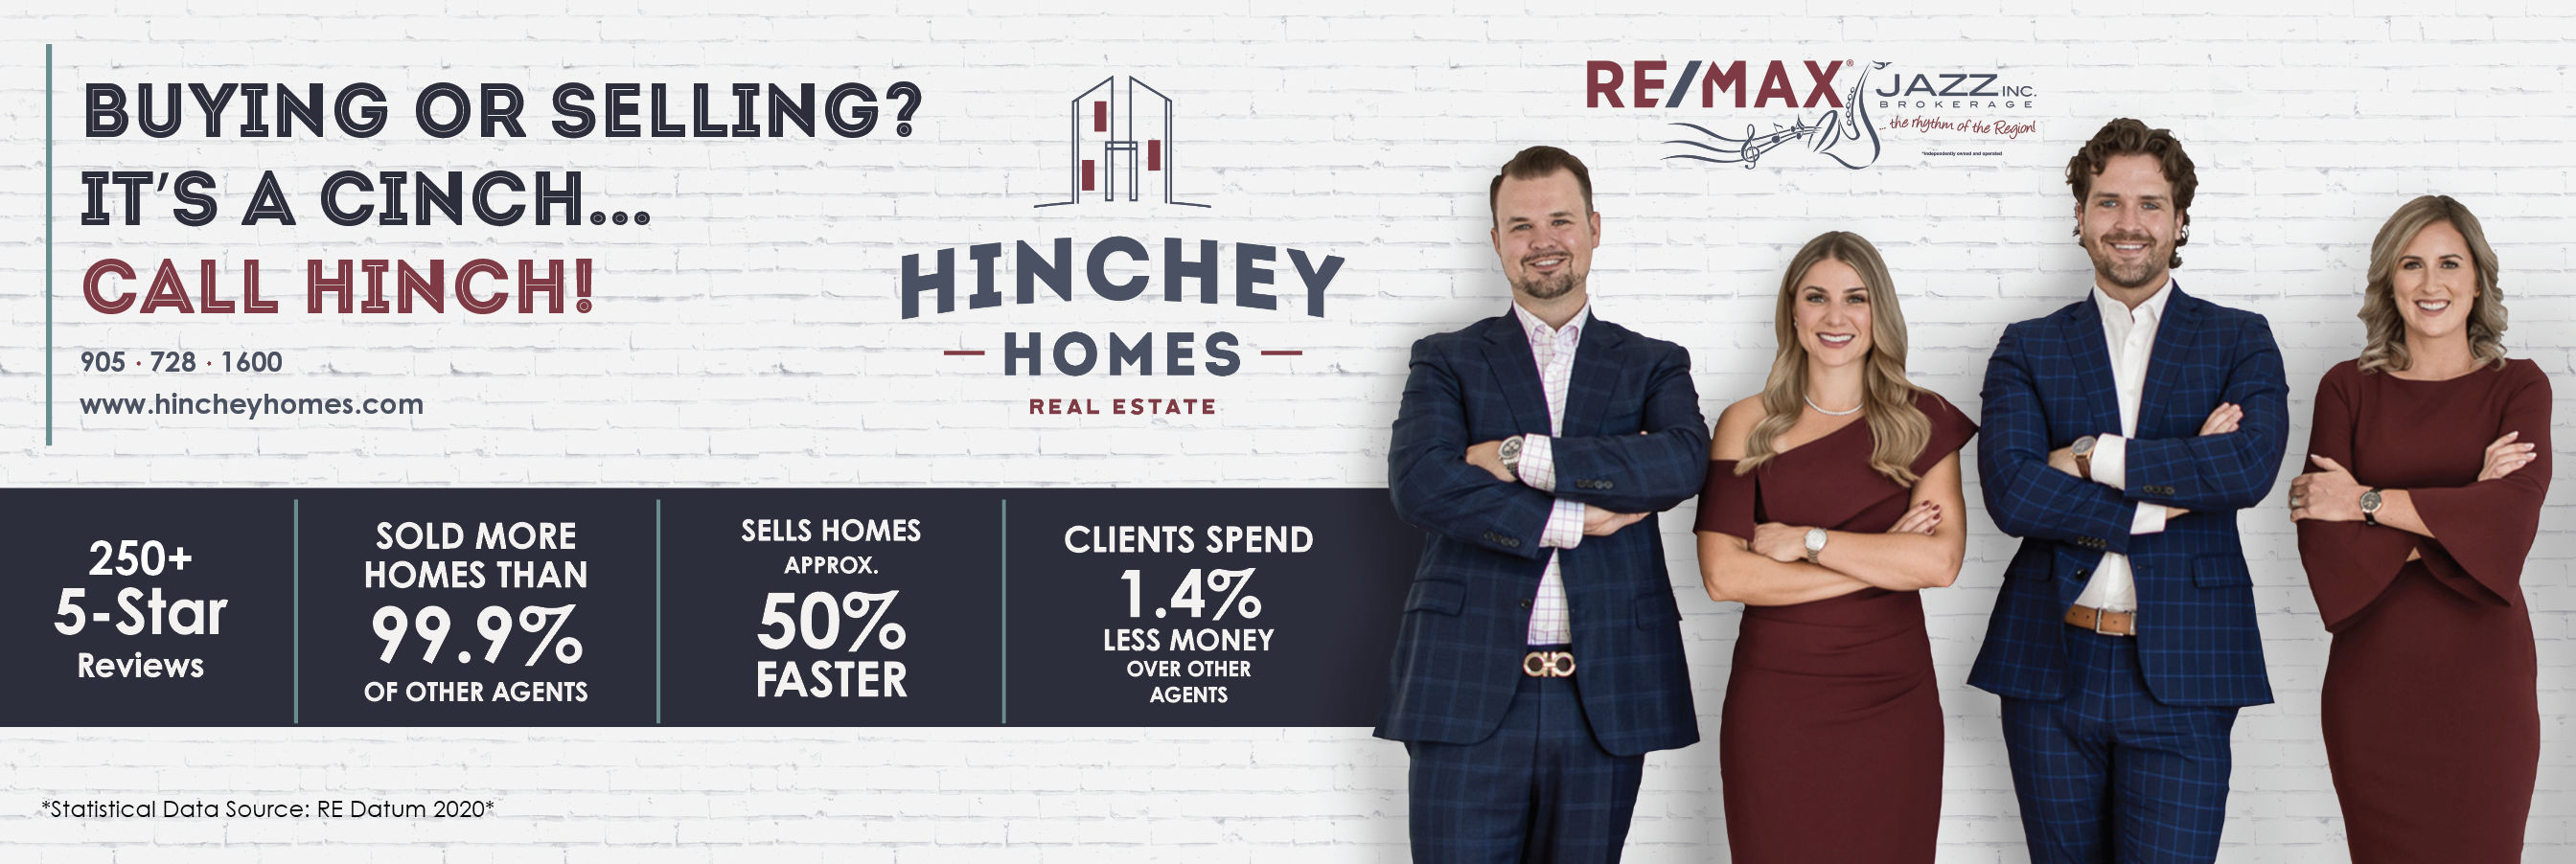 The Hinchey Homes Team - Re/Max Jazz Reviews, Ratings | Real Estate Services near 193 King Street East , Oshawa ON